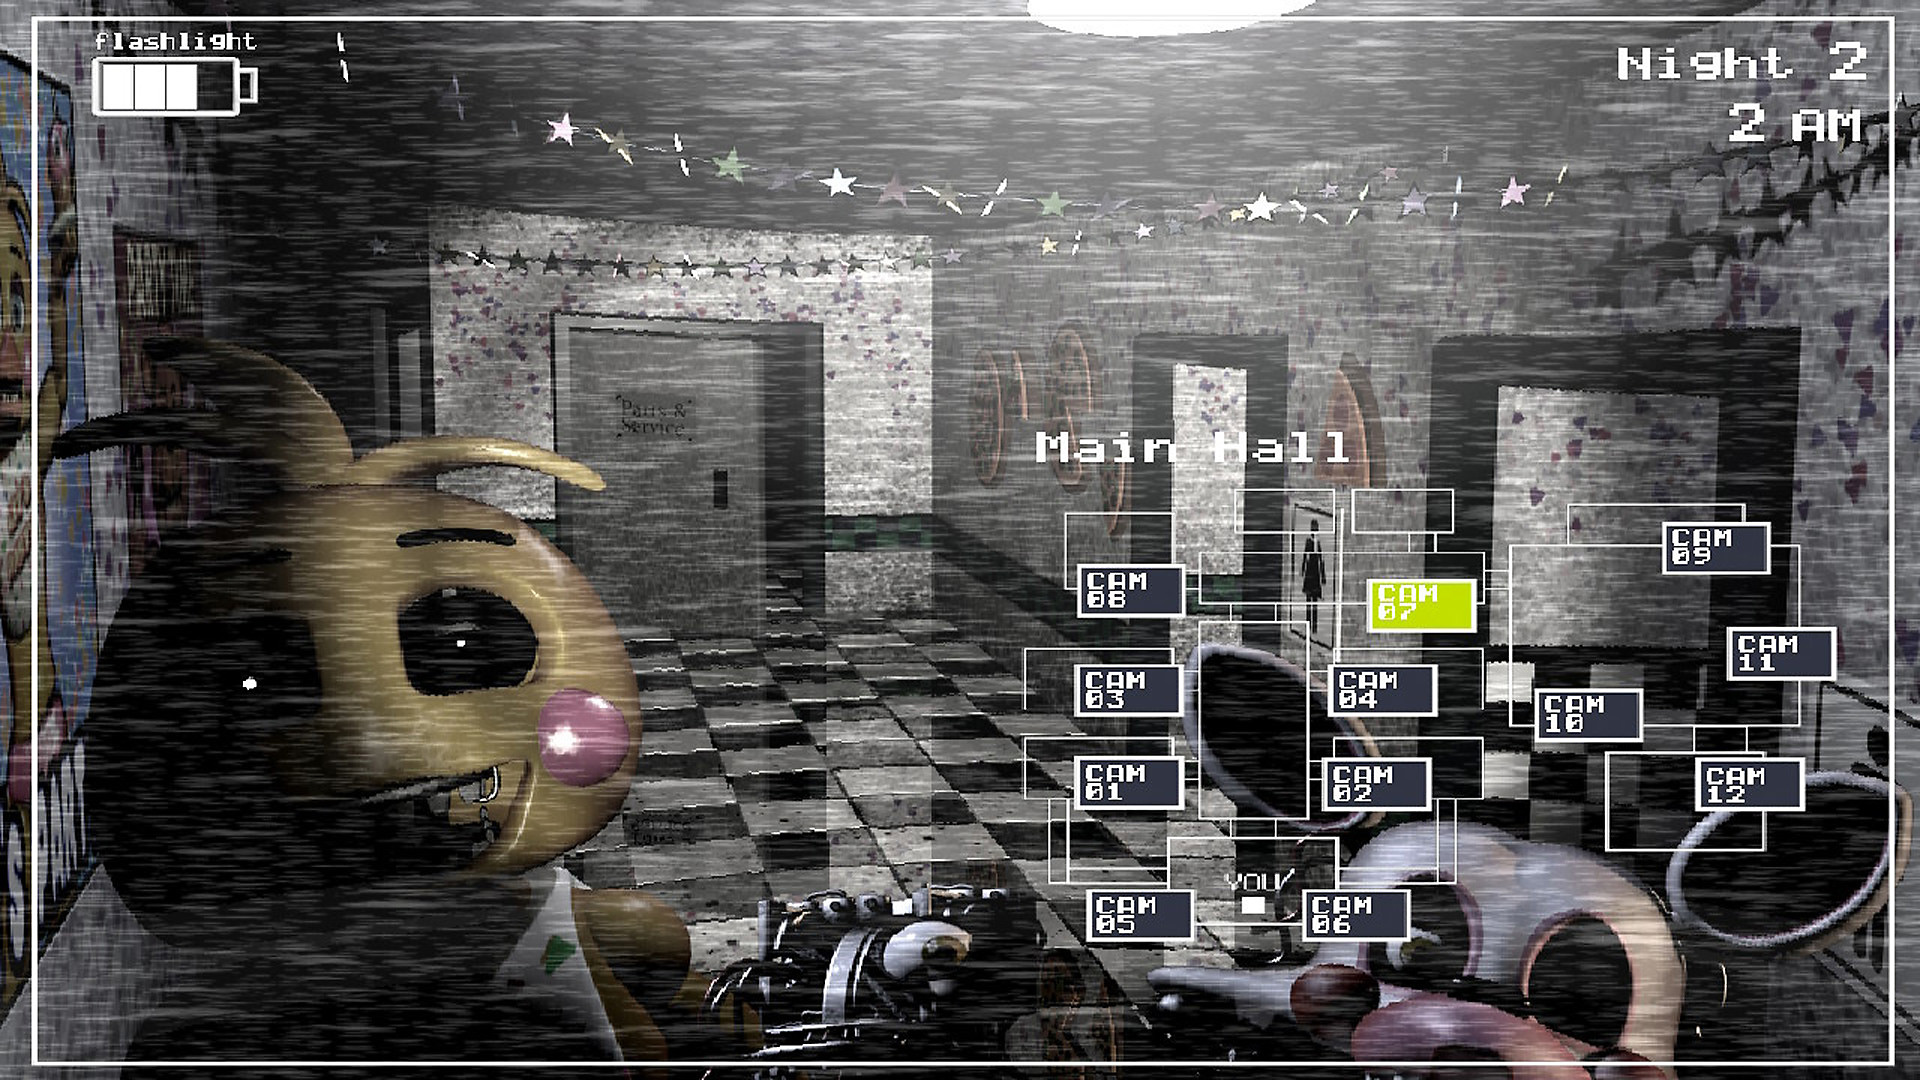 Five Nights at Freddy's 2 in Action